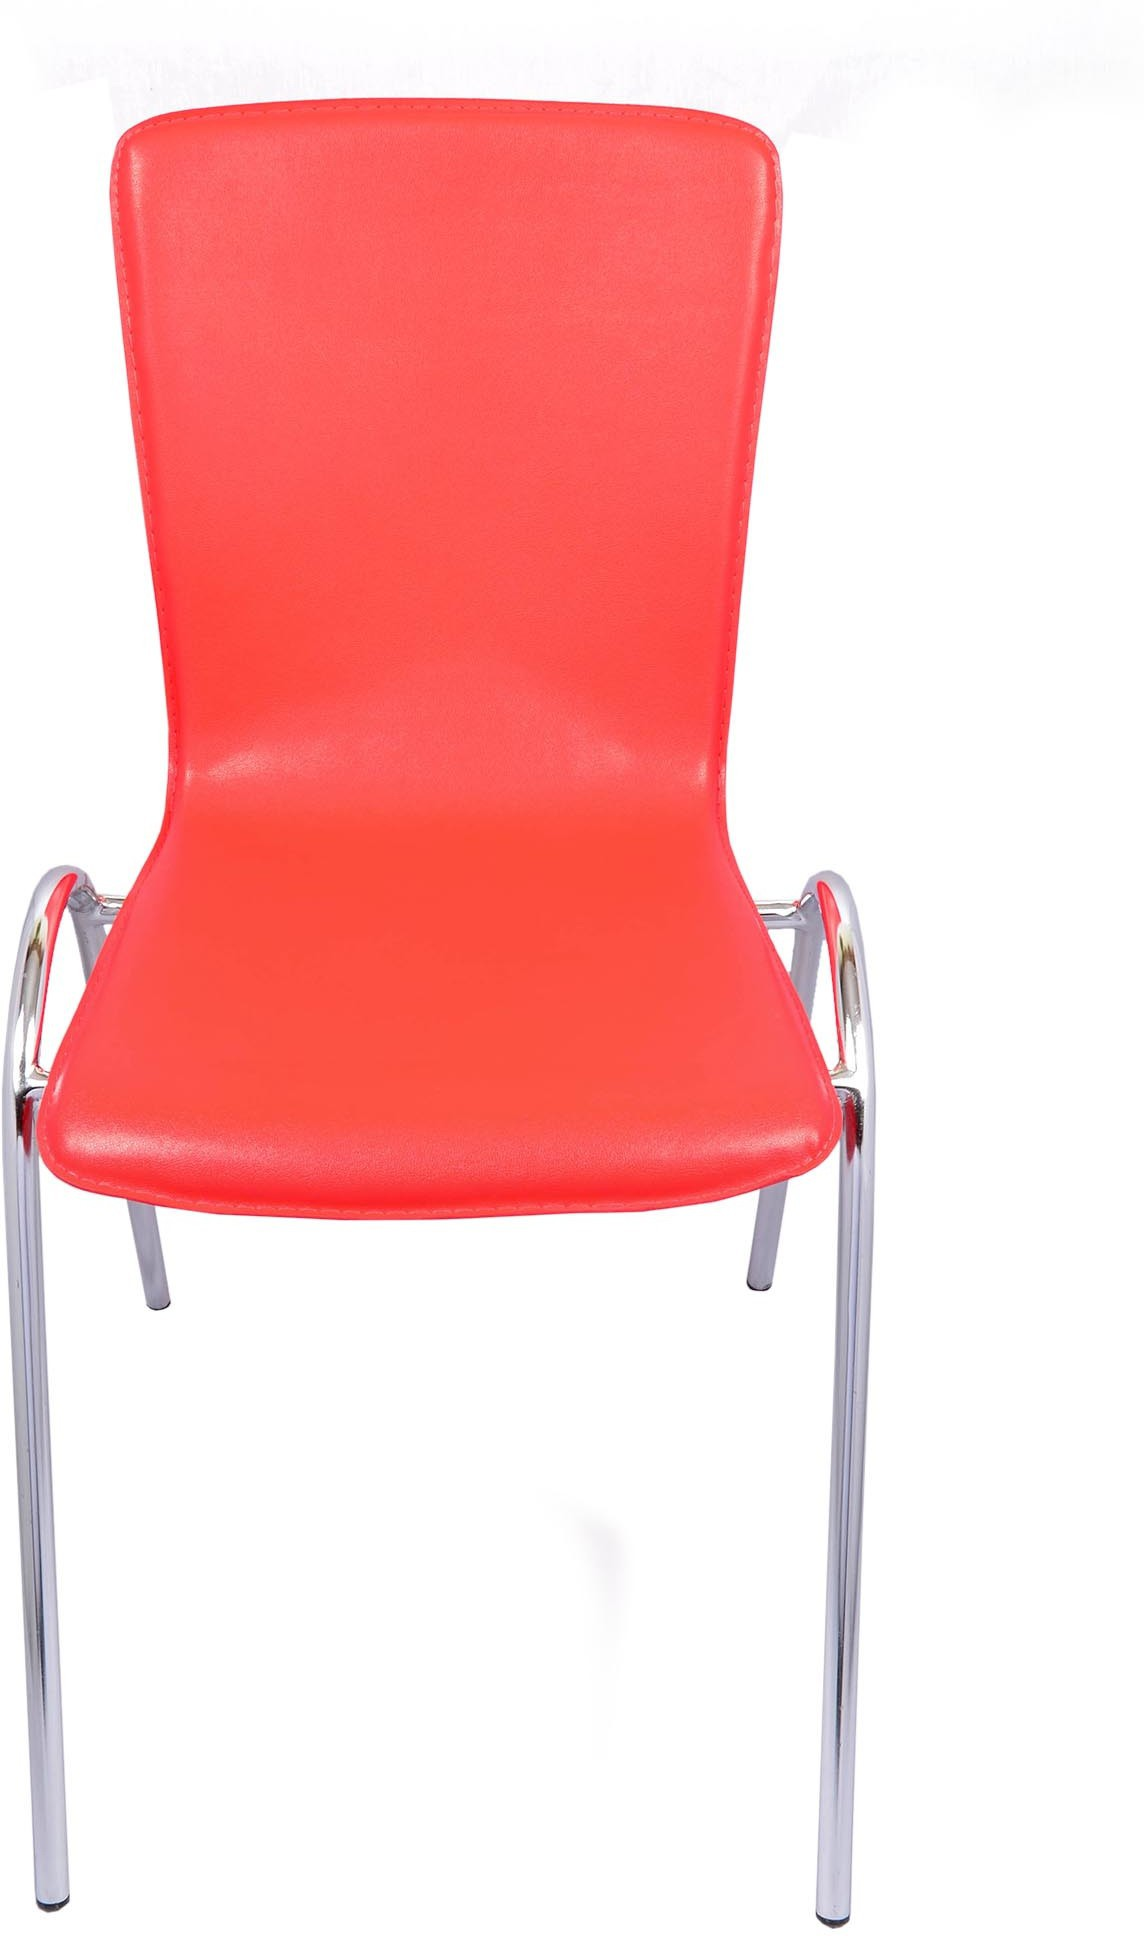 View Darla Interiors Leatherette Office Chair(Red) Furniture (Darla Interiors)